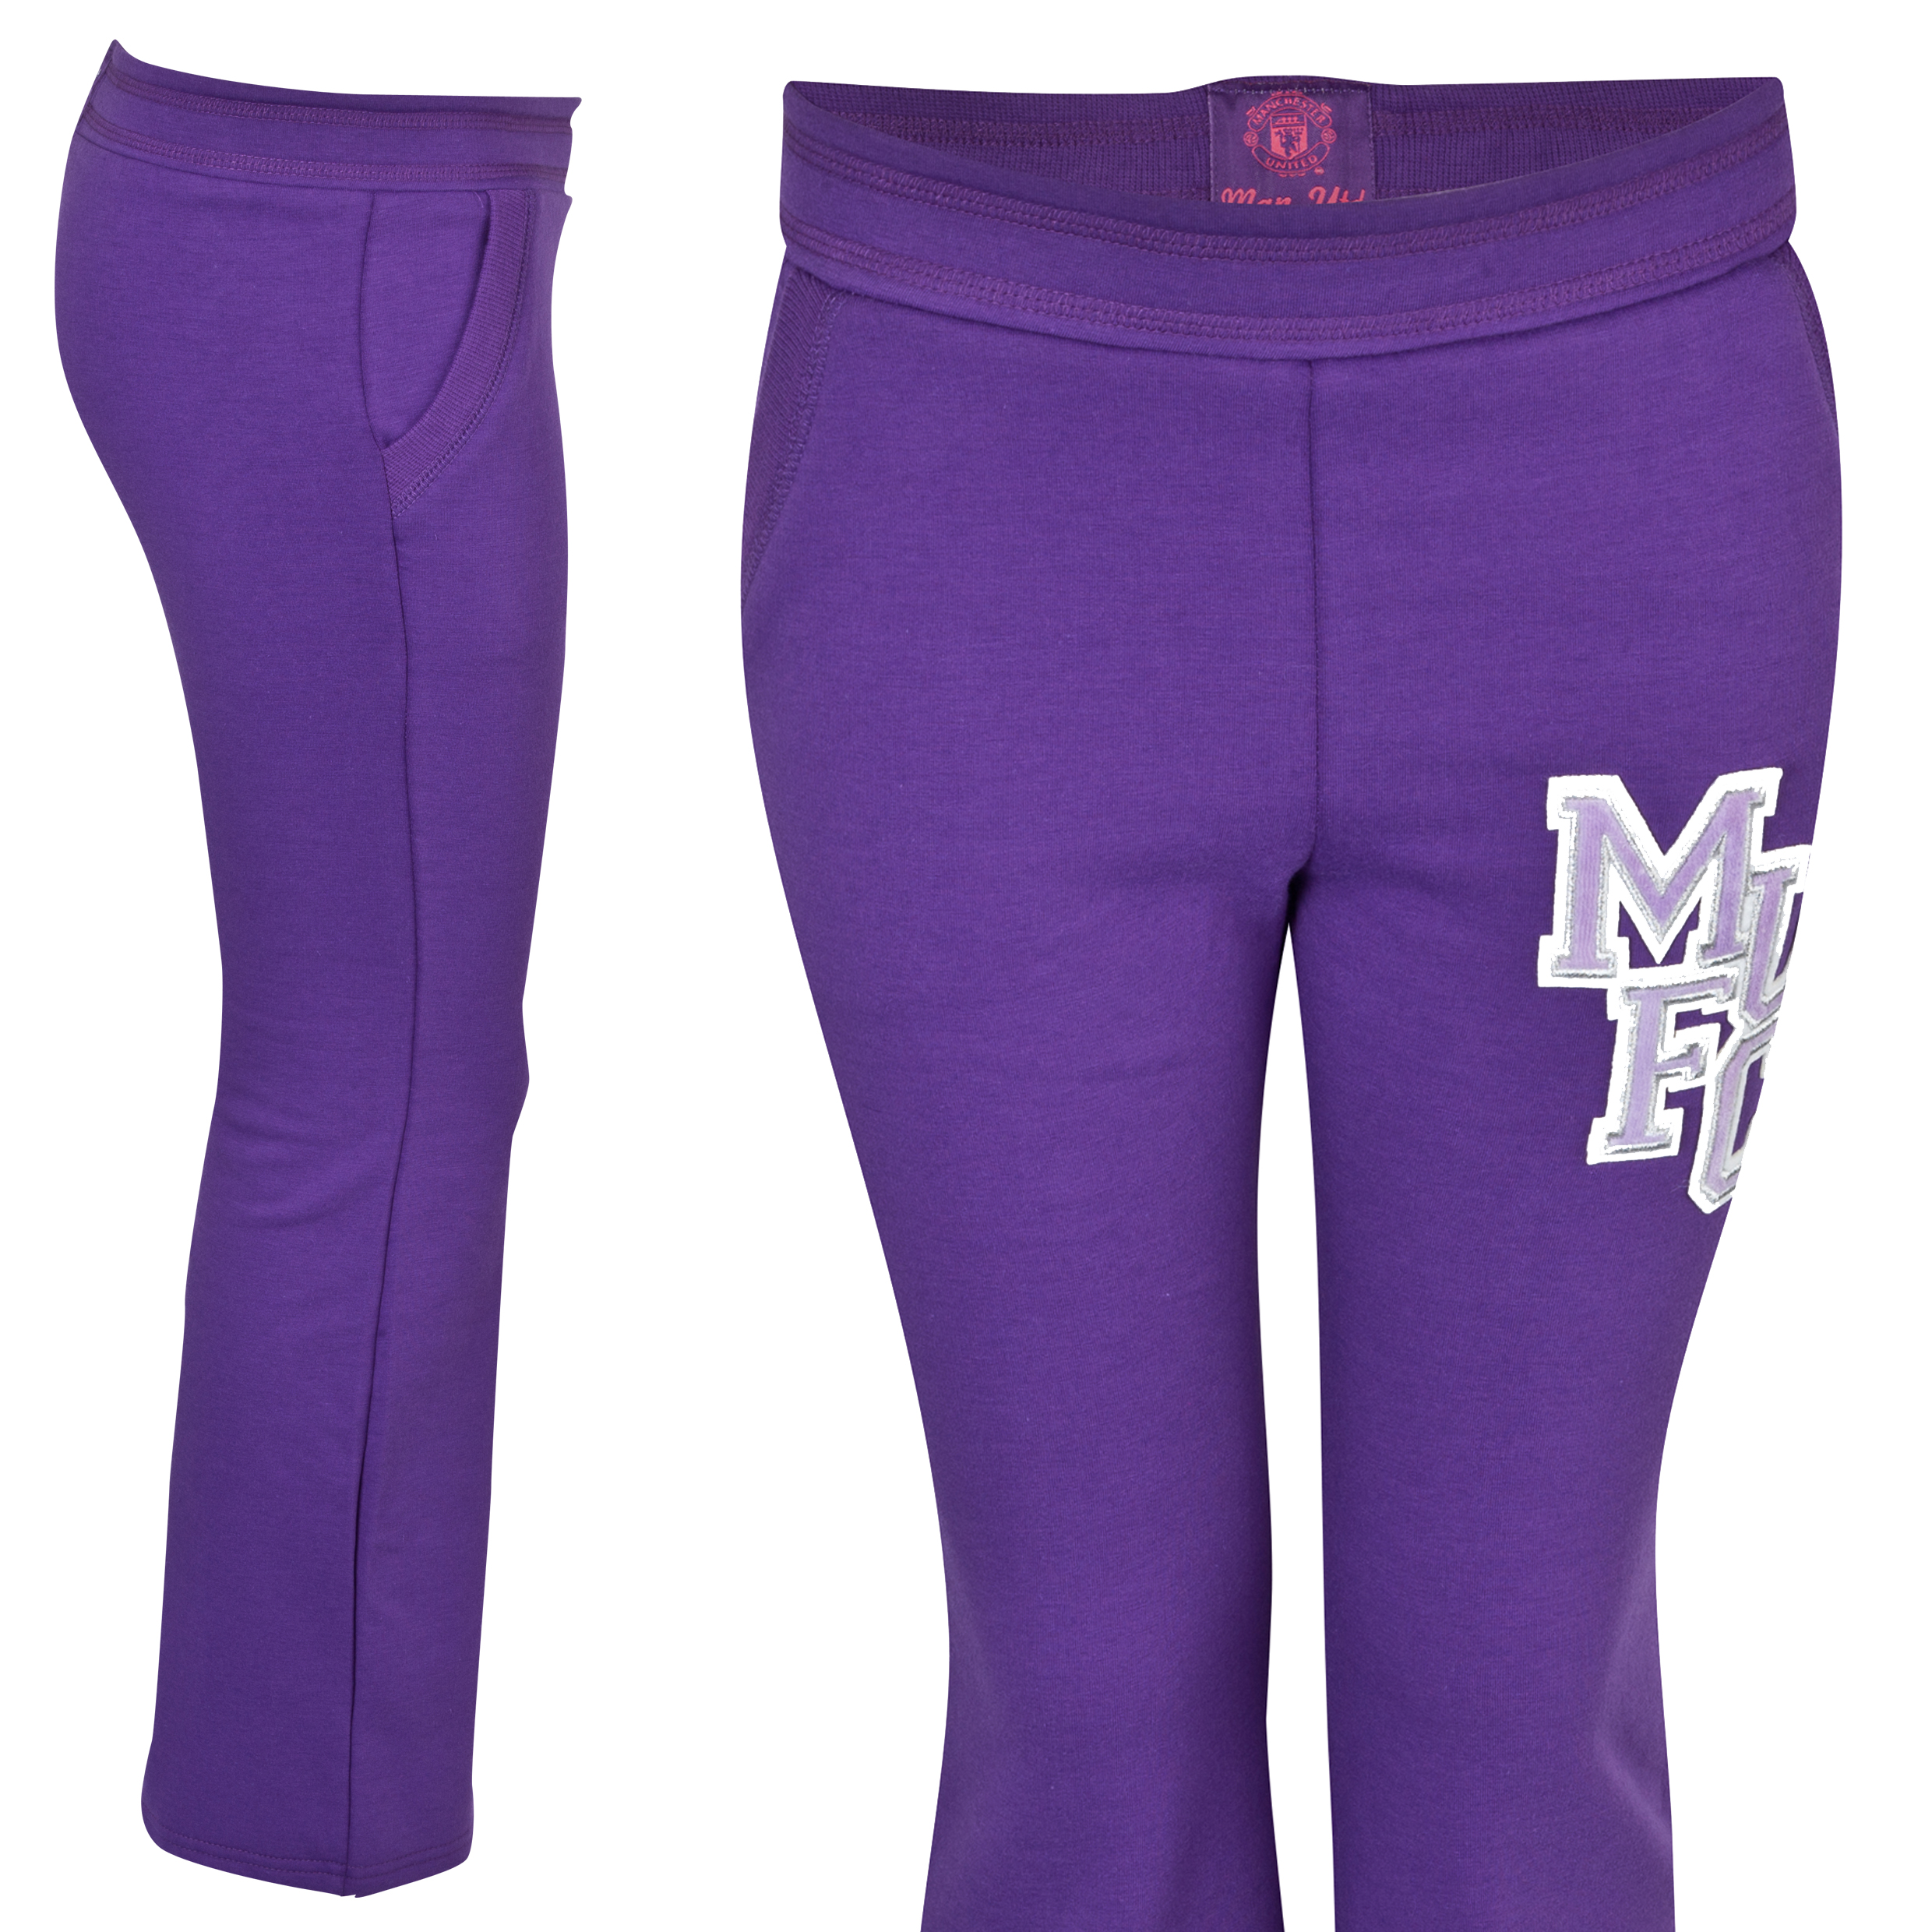 Manchester United Appliqu? Joggers  - Girls Purple